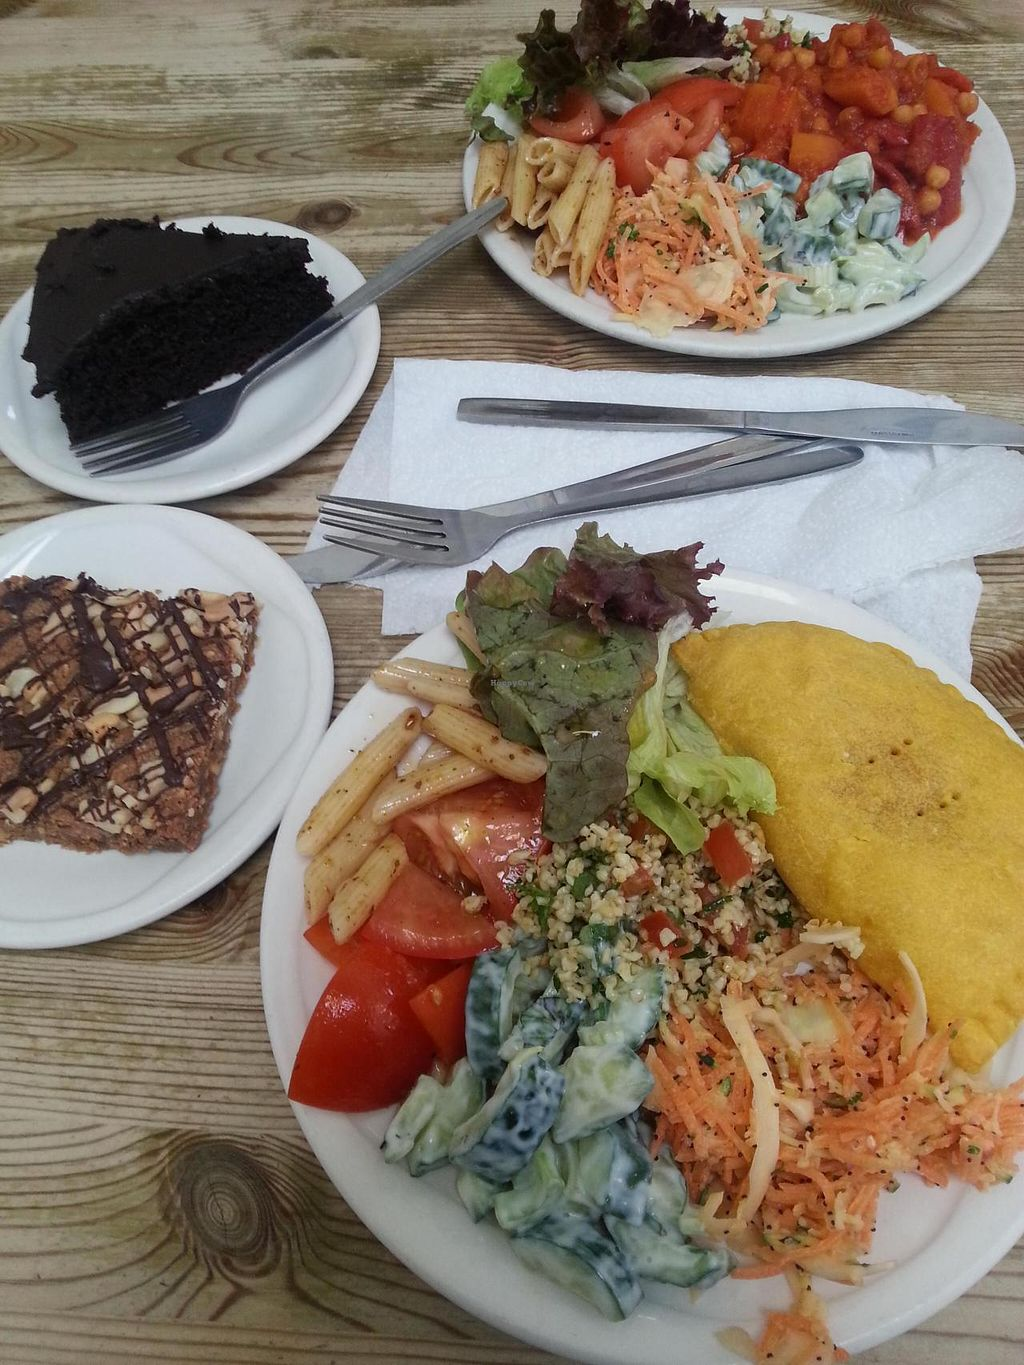 "Photo of Blue Moon Cafe  by <a href=""/members/profile/Miggi"">Miggi</a> <br/>Jamaica pattie with salad, roast butternut squash, chick pea and red peppee bake, both served with salads. peanut butter blondie and dark choc cake <br/> May 15, 2014  - <a href='/contact/abuse/image/799/70019'>Report</a>"